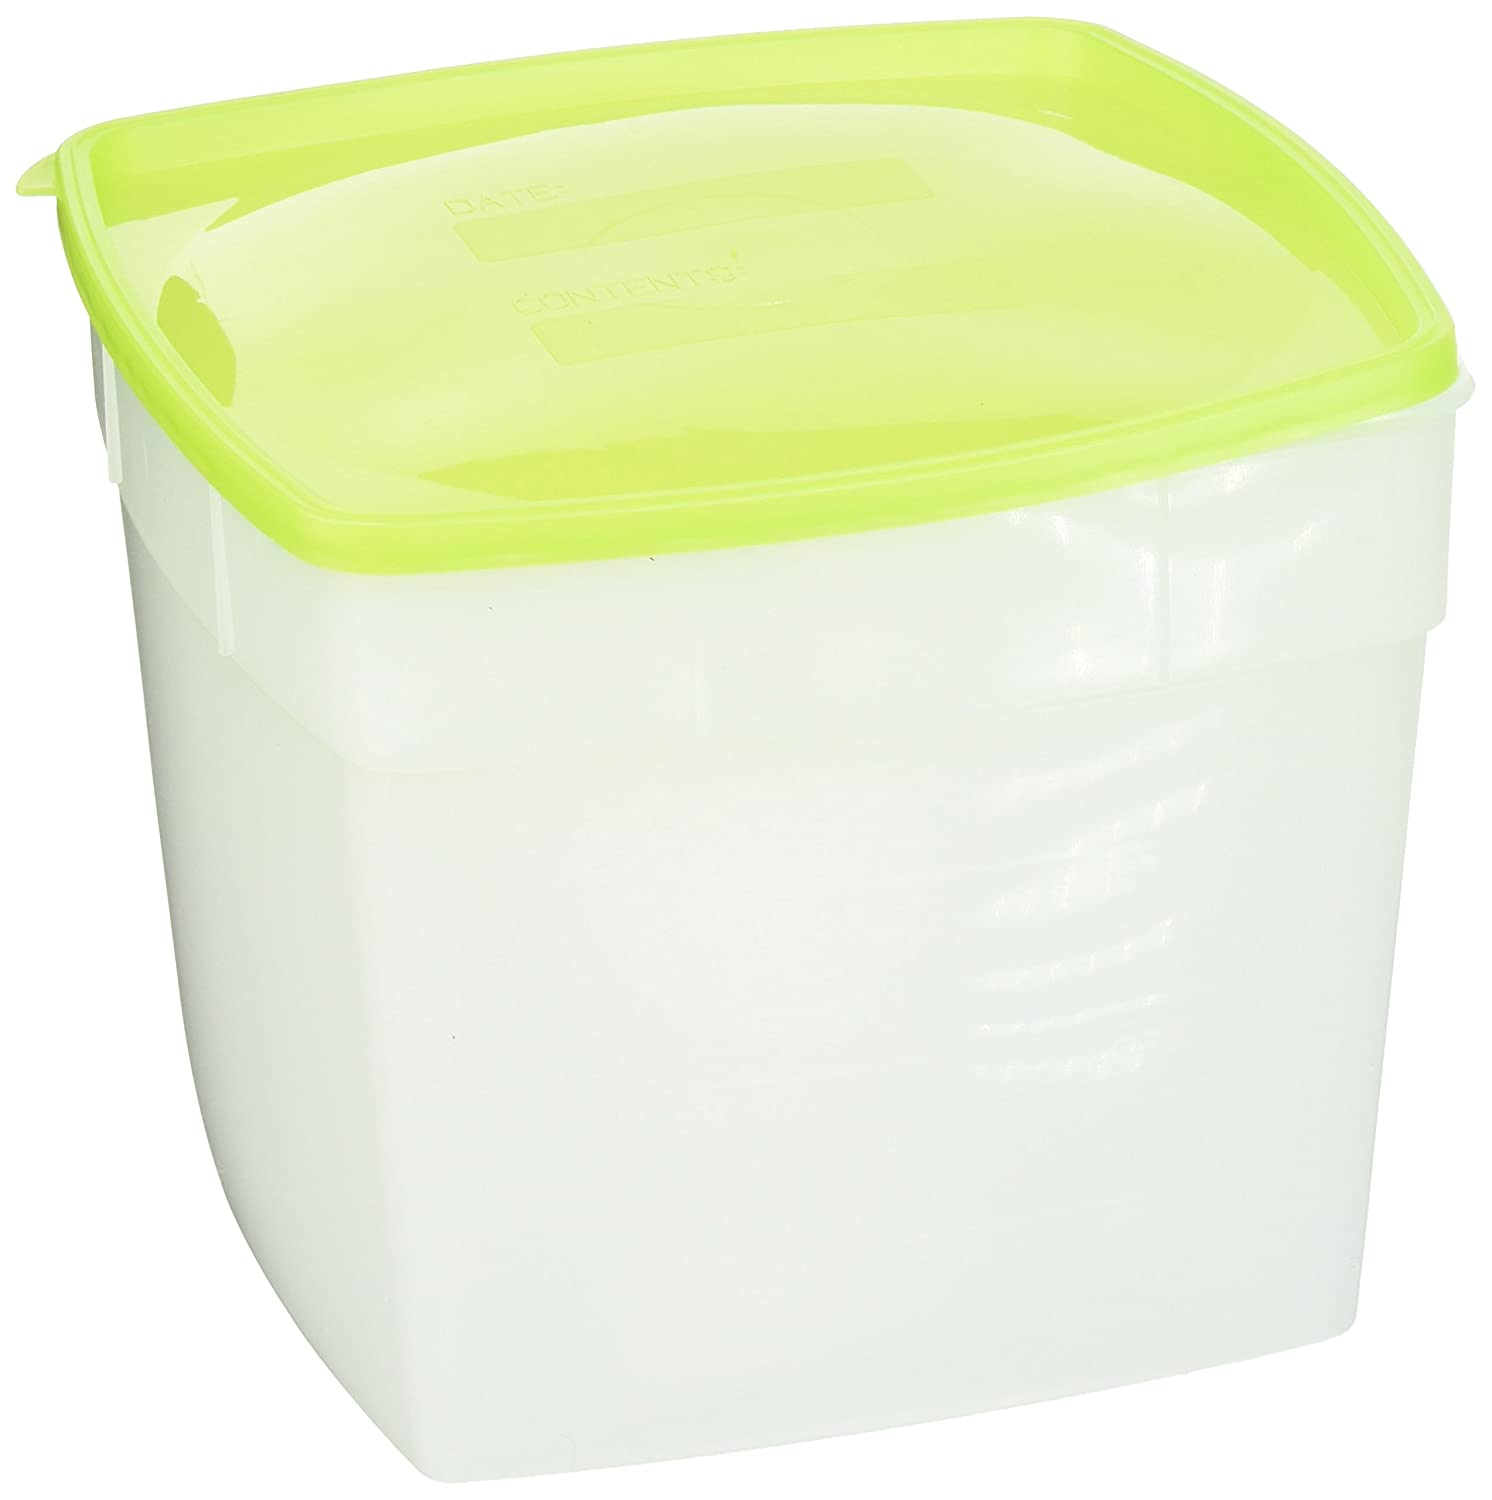 Arrow Home Products 04505 2PK 1/2 Gallon Freezer Container